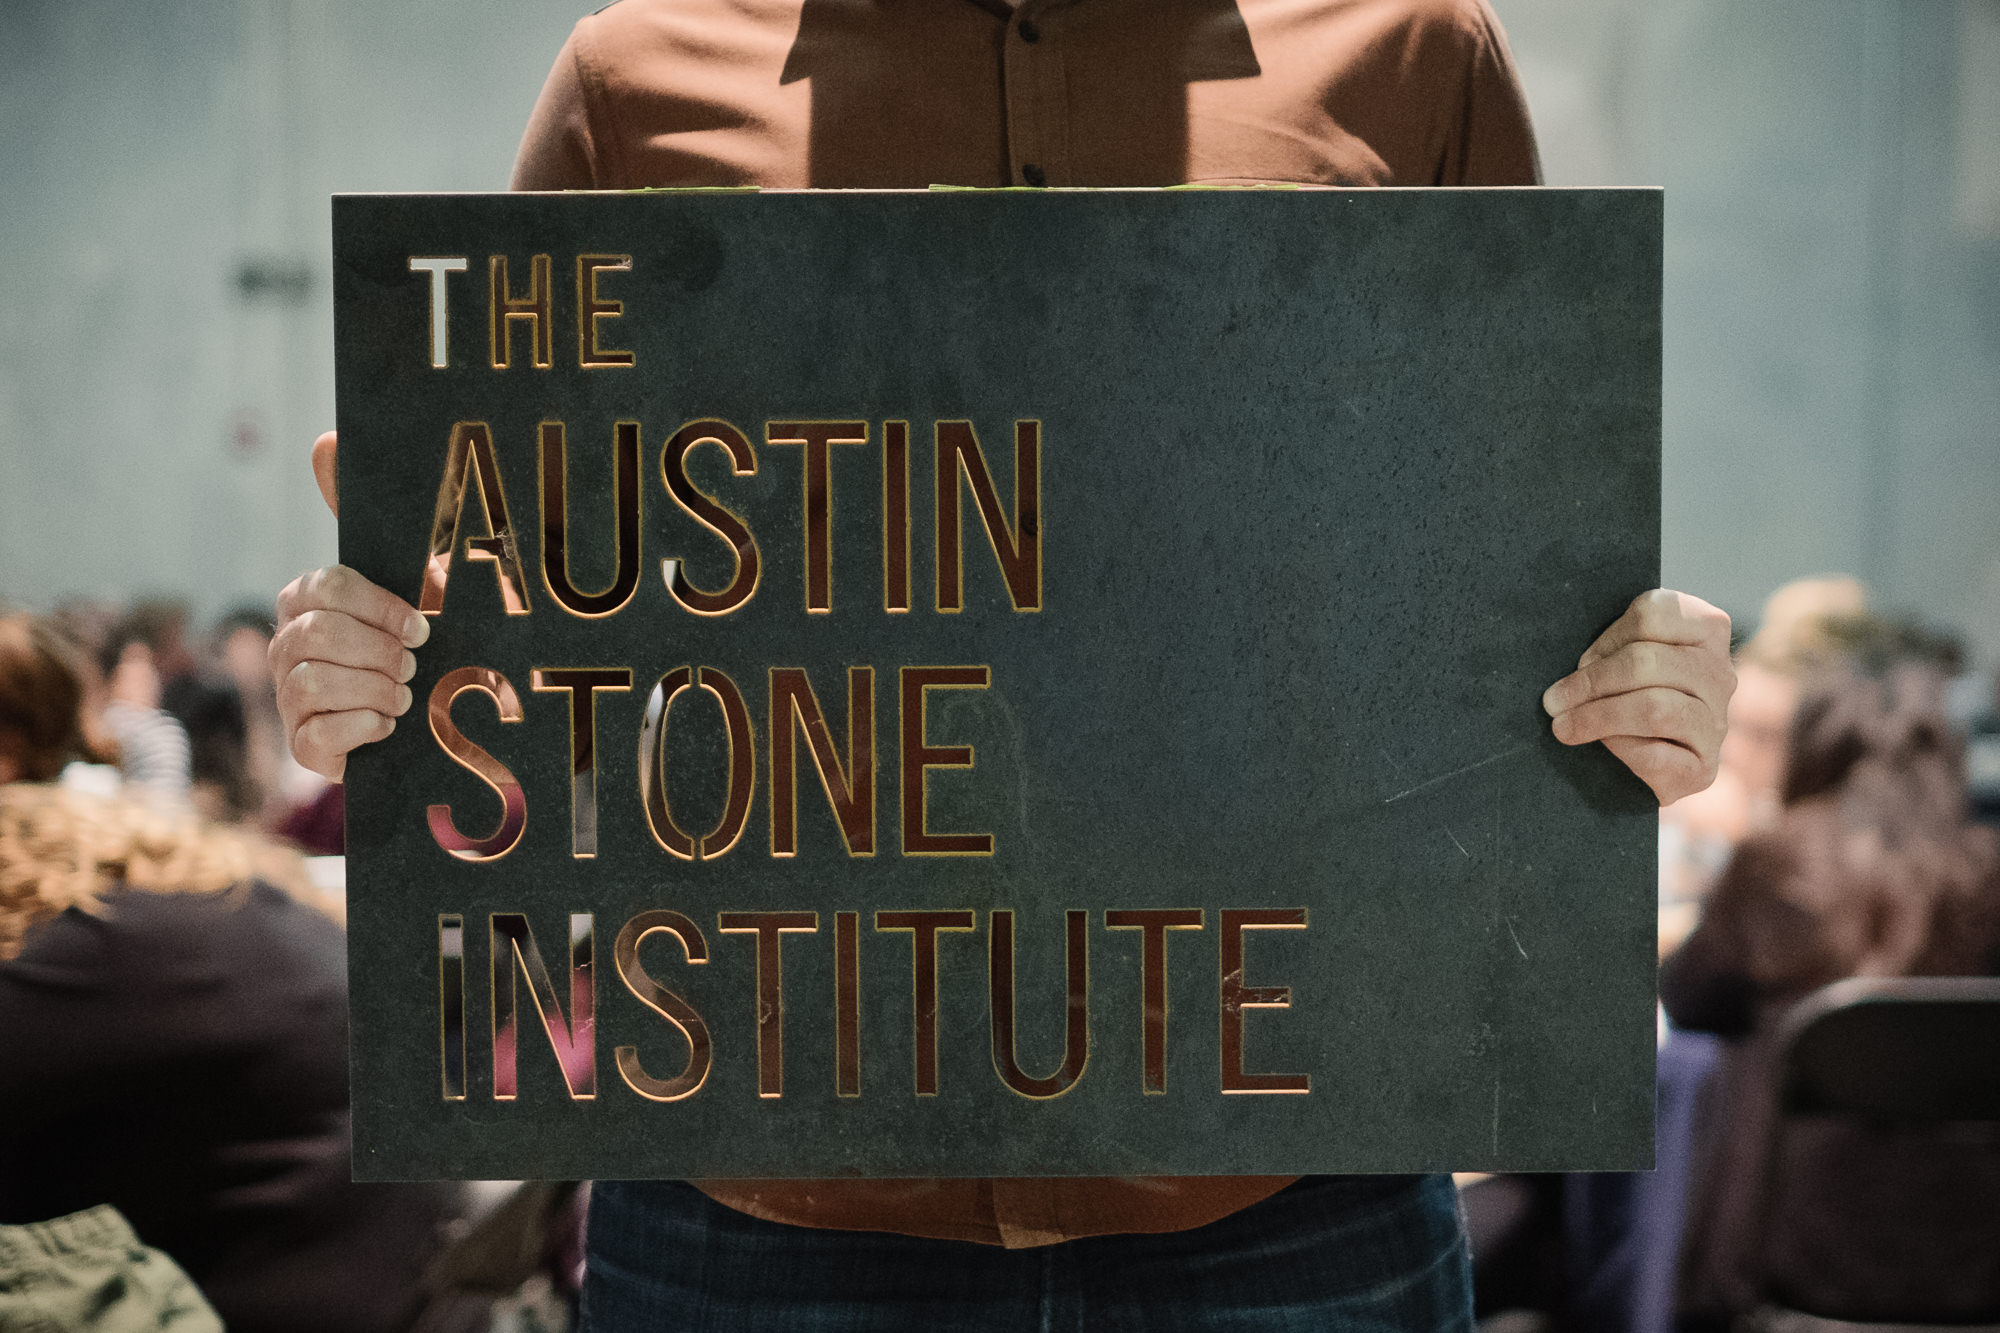 - As we enter into May I've seen the end of my time as a student in the Men and Women's Development Program at The Austin Stone. Nine months ago over two hundred people & I began diving deeply into systematic theology and the in depth study of many different topics of the Bible and Chrisitianity. Now graduated and on the other side, I can say without hesitation that my understanding of the Bible and desire that people know what is actually true about it is beyond what I ever could have expected.